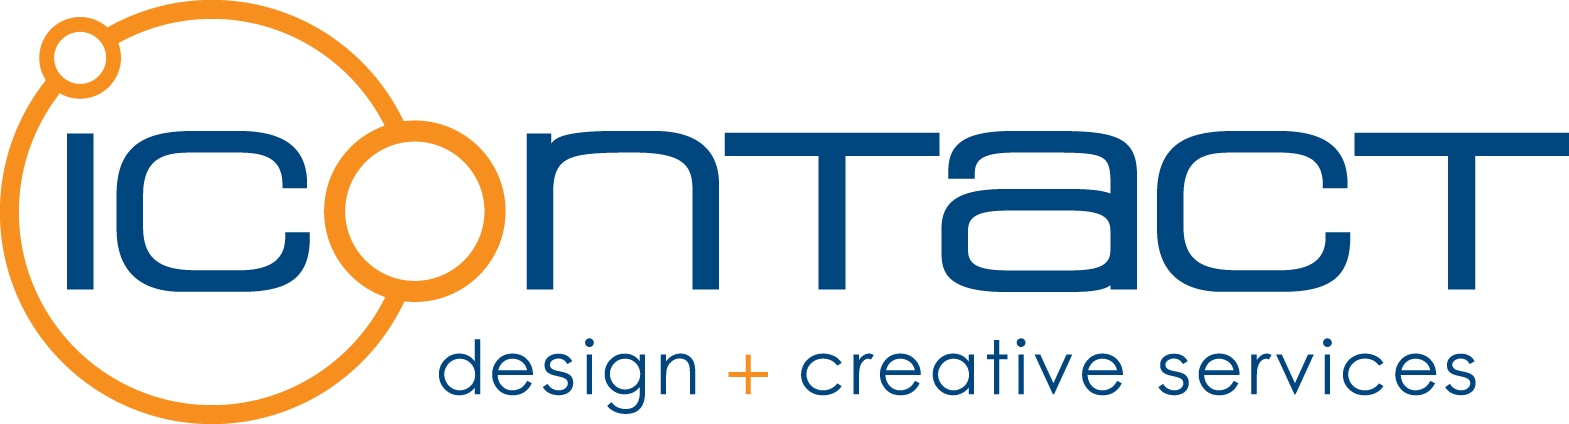 icontact design + creative services logo